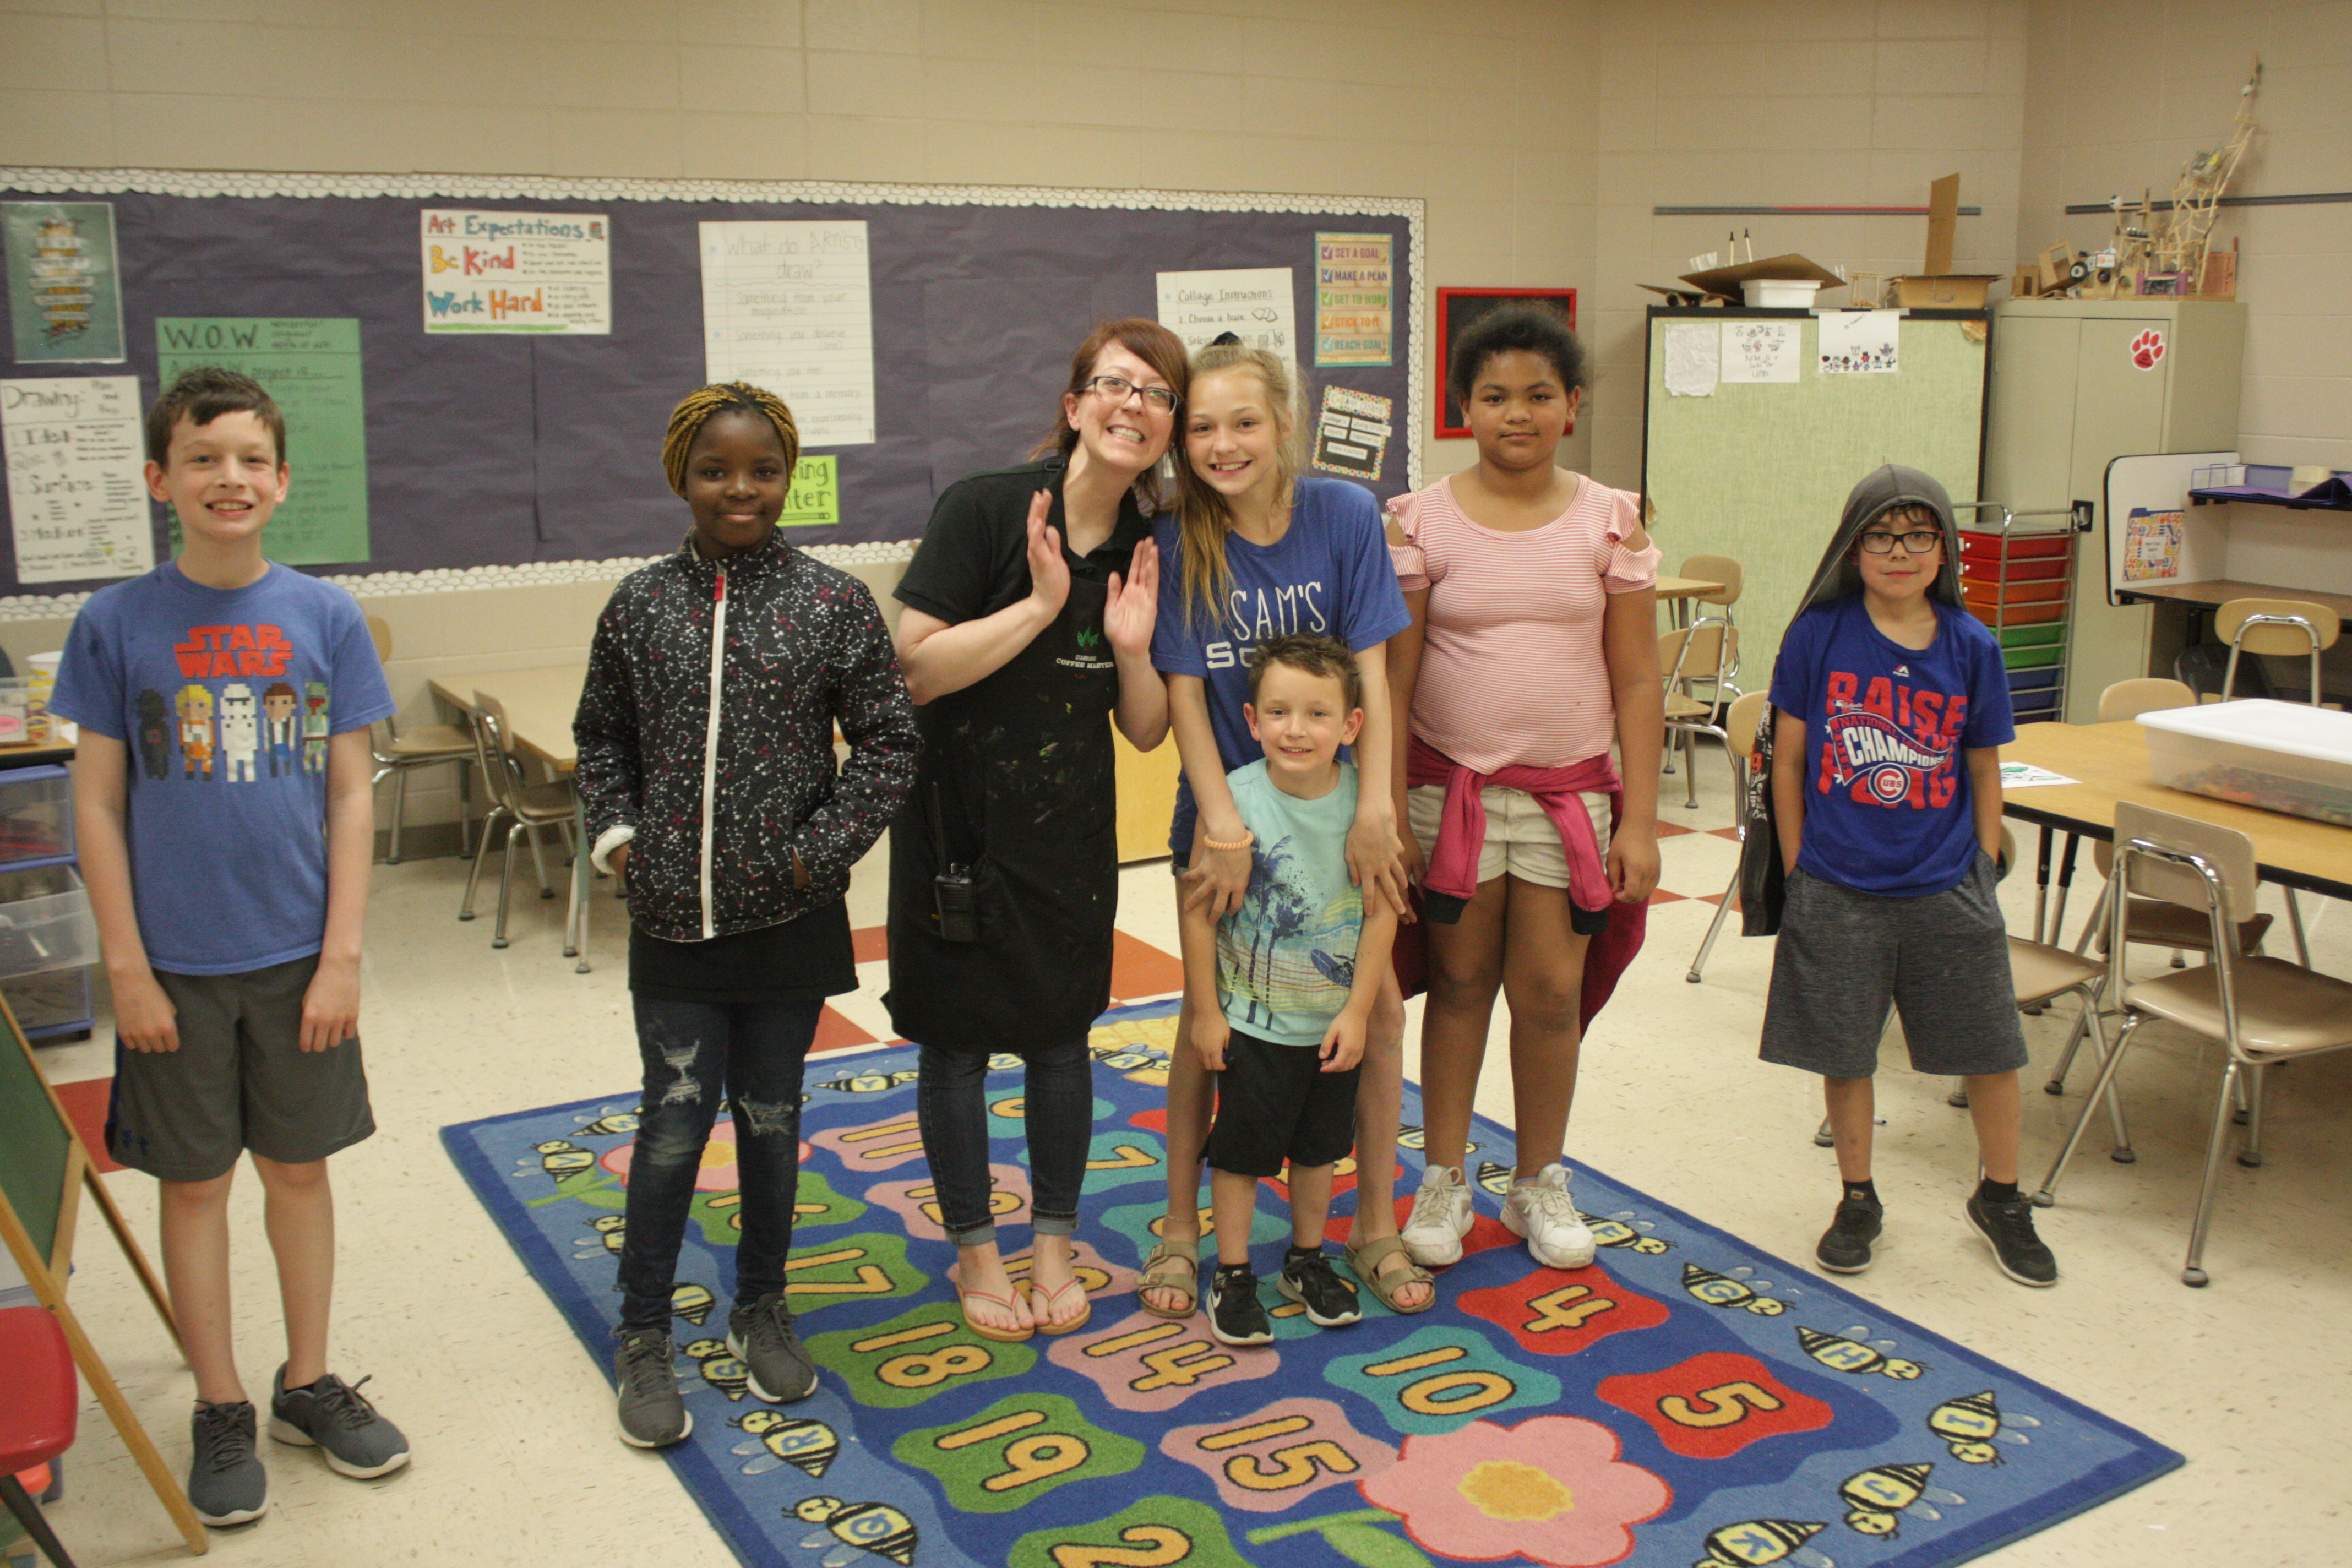 'Wolfpack' student group at La Vista West Elementary creates new relationships